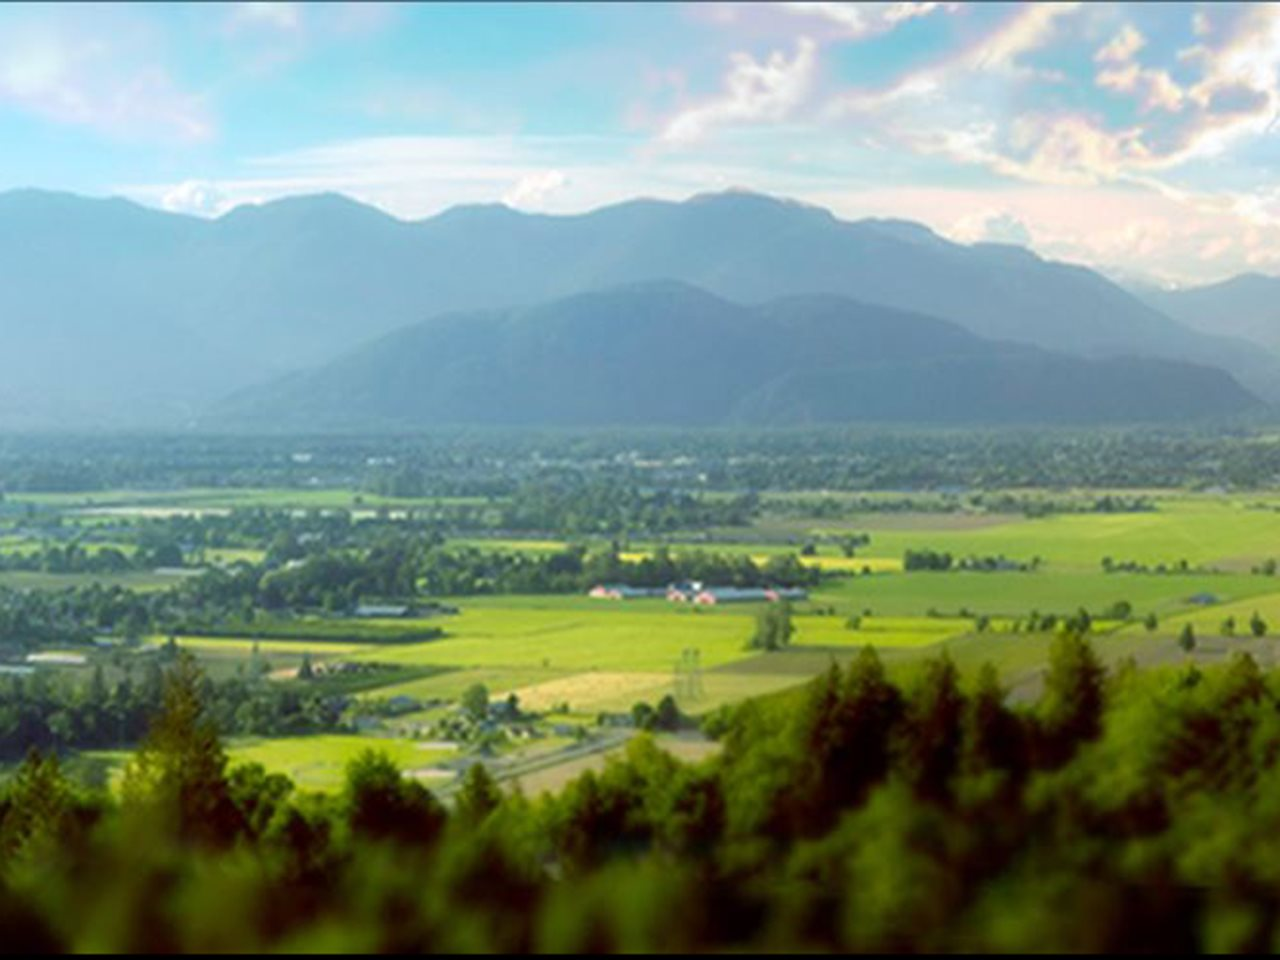 Building lot at The Summit on Promontory in Beautiful Chilliwack. This 7800 sqft lot sits on a dquiet street, out your front door and up the street are endless walking trails and green space. Located just mins away from Shopping, Schools, Parks, Activity Centers and more makes this location prime. Come check out this beautiful neighborhood and build the home of your dreams!